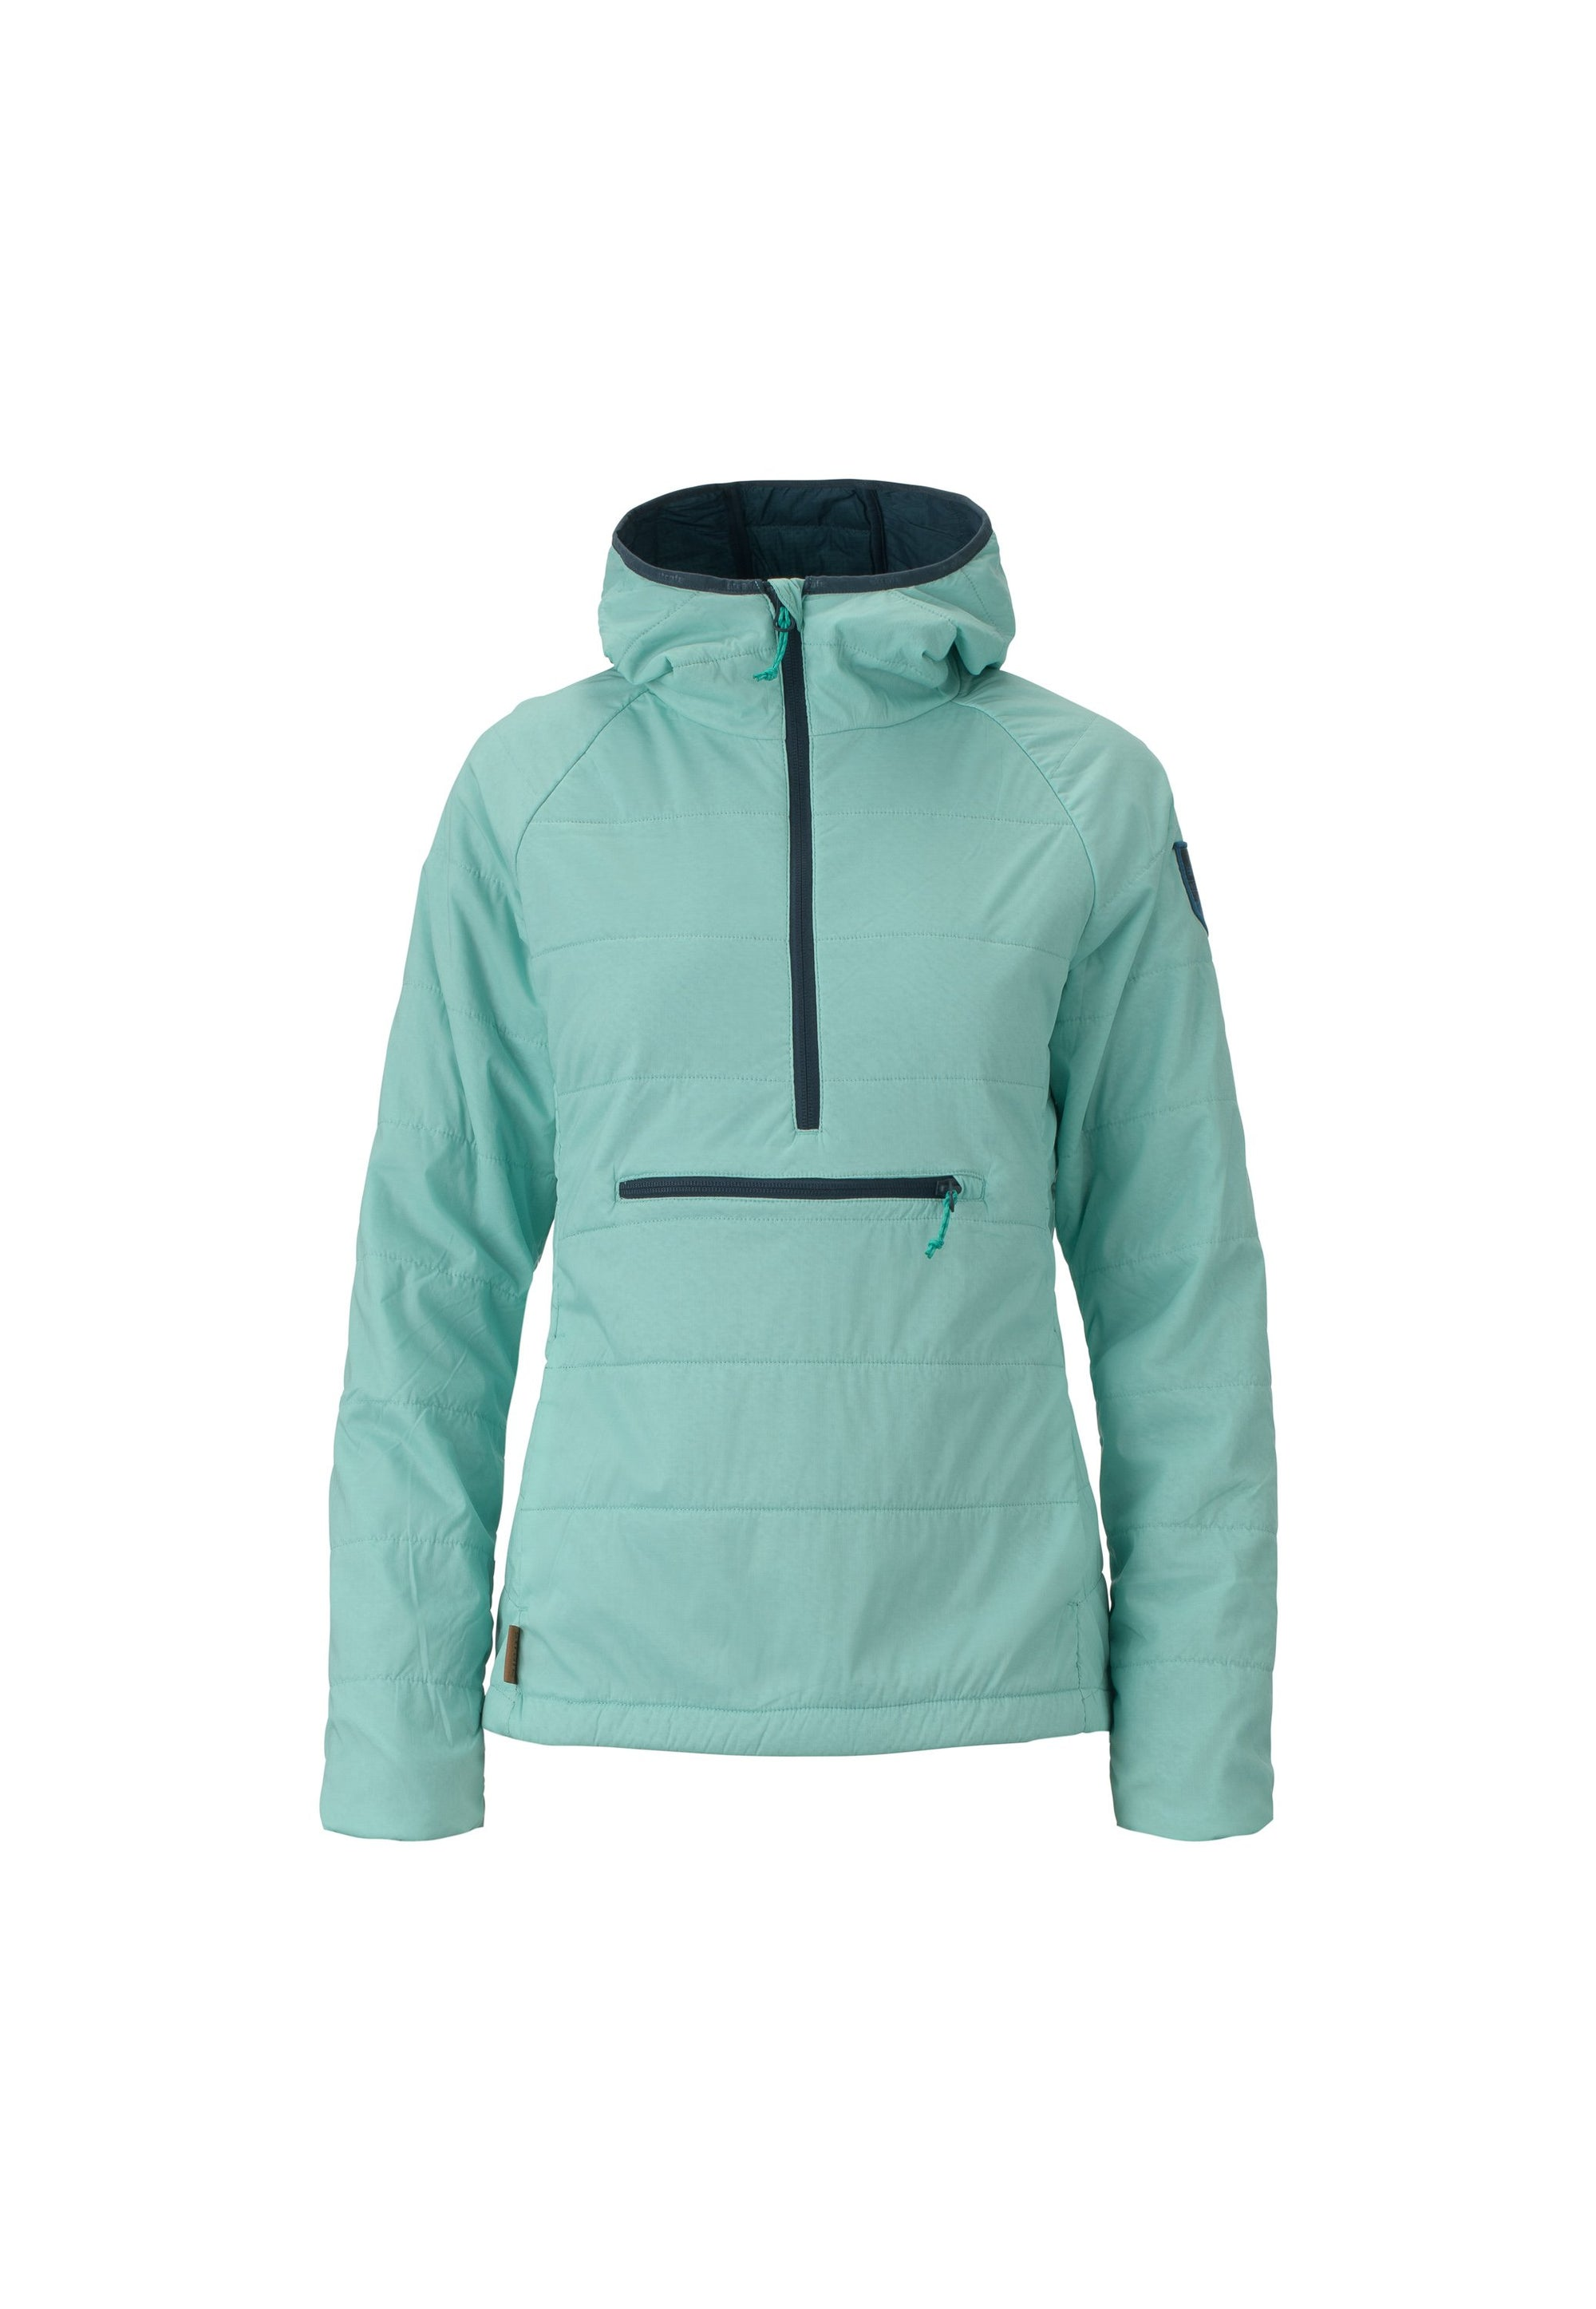 tropicana 2019 women's sunnyside polartec alpha anorak insulated skiing and snowboarding mid layer from strafe outerwear